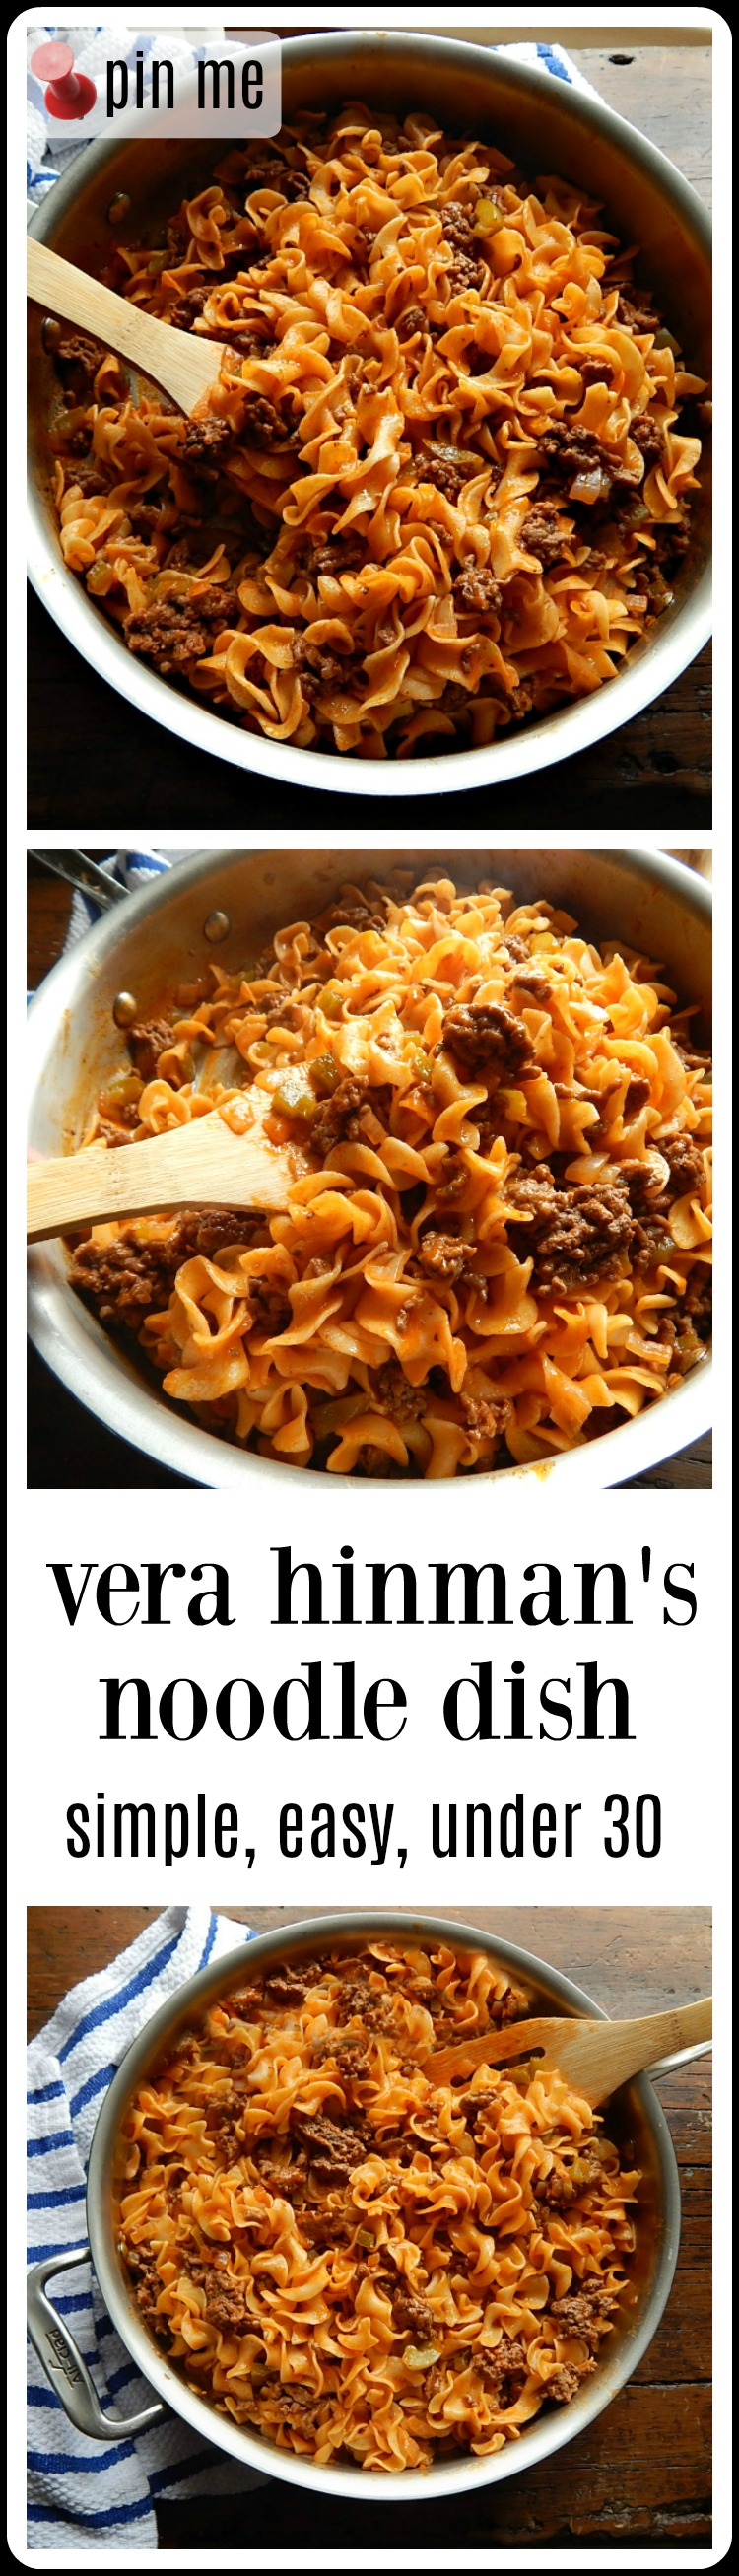 Vera Hinman's Noodle Dish, a simple down-home dish of ground beef & noodles. Kind of like Hamburger Helper but actually good! This was my fave dish growing up and I still love it. Under 30 minutes one skillet dinner.